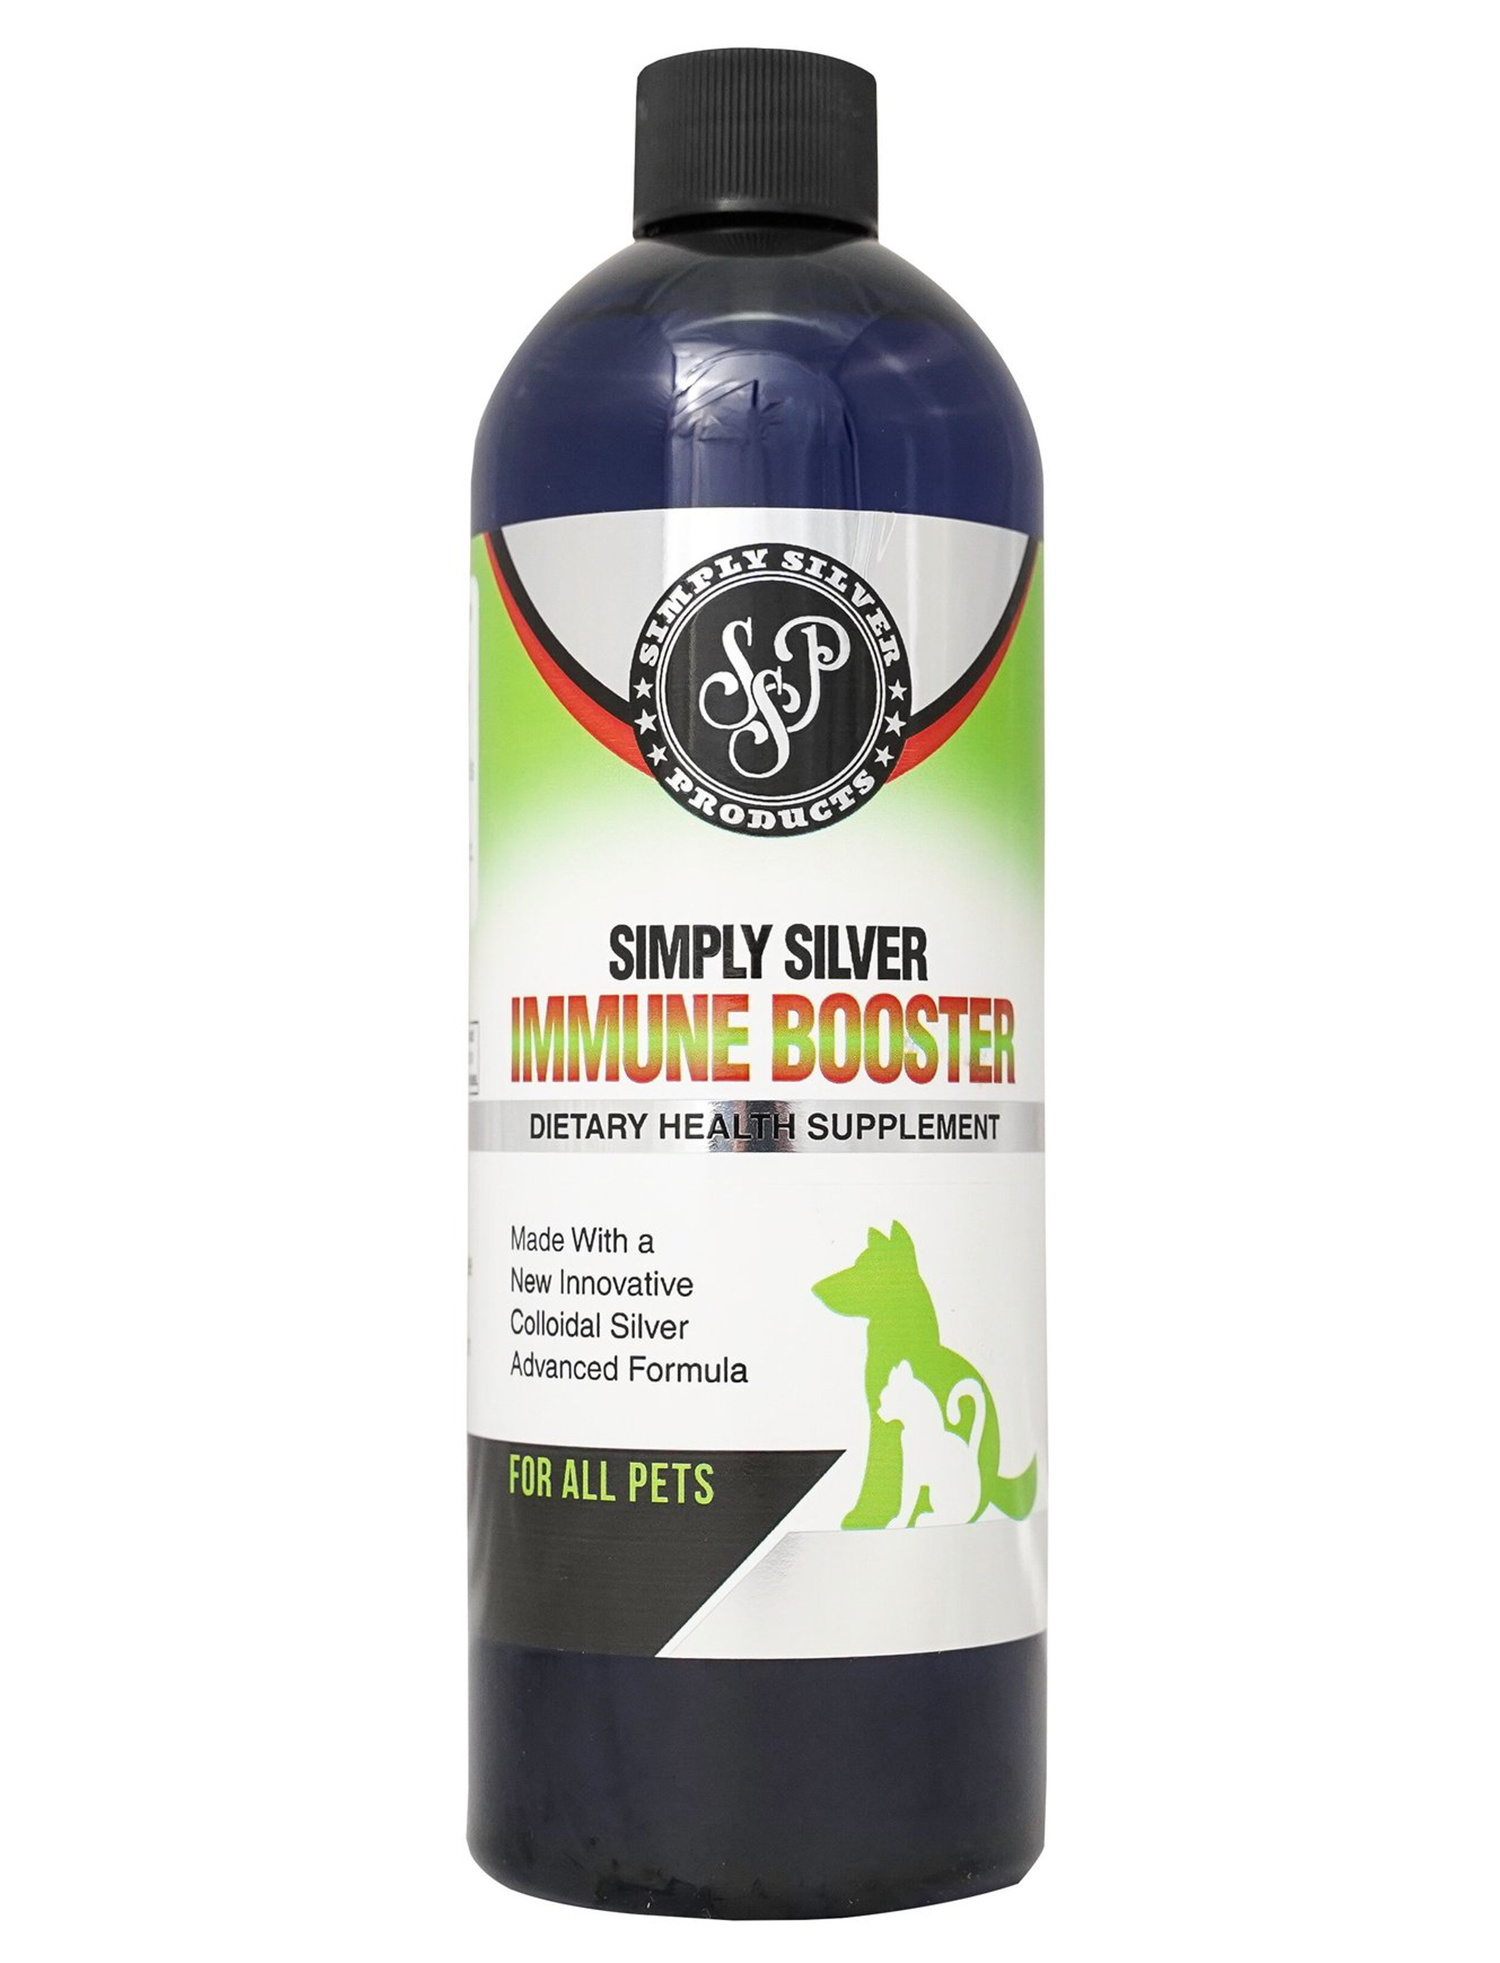 simply-silver-immune-booster-pets-001.jpg